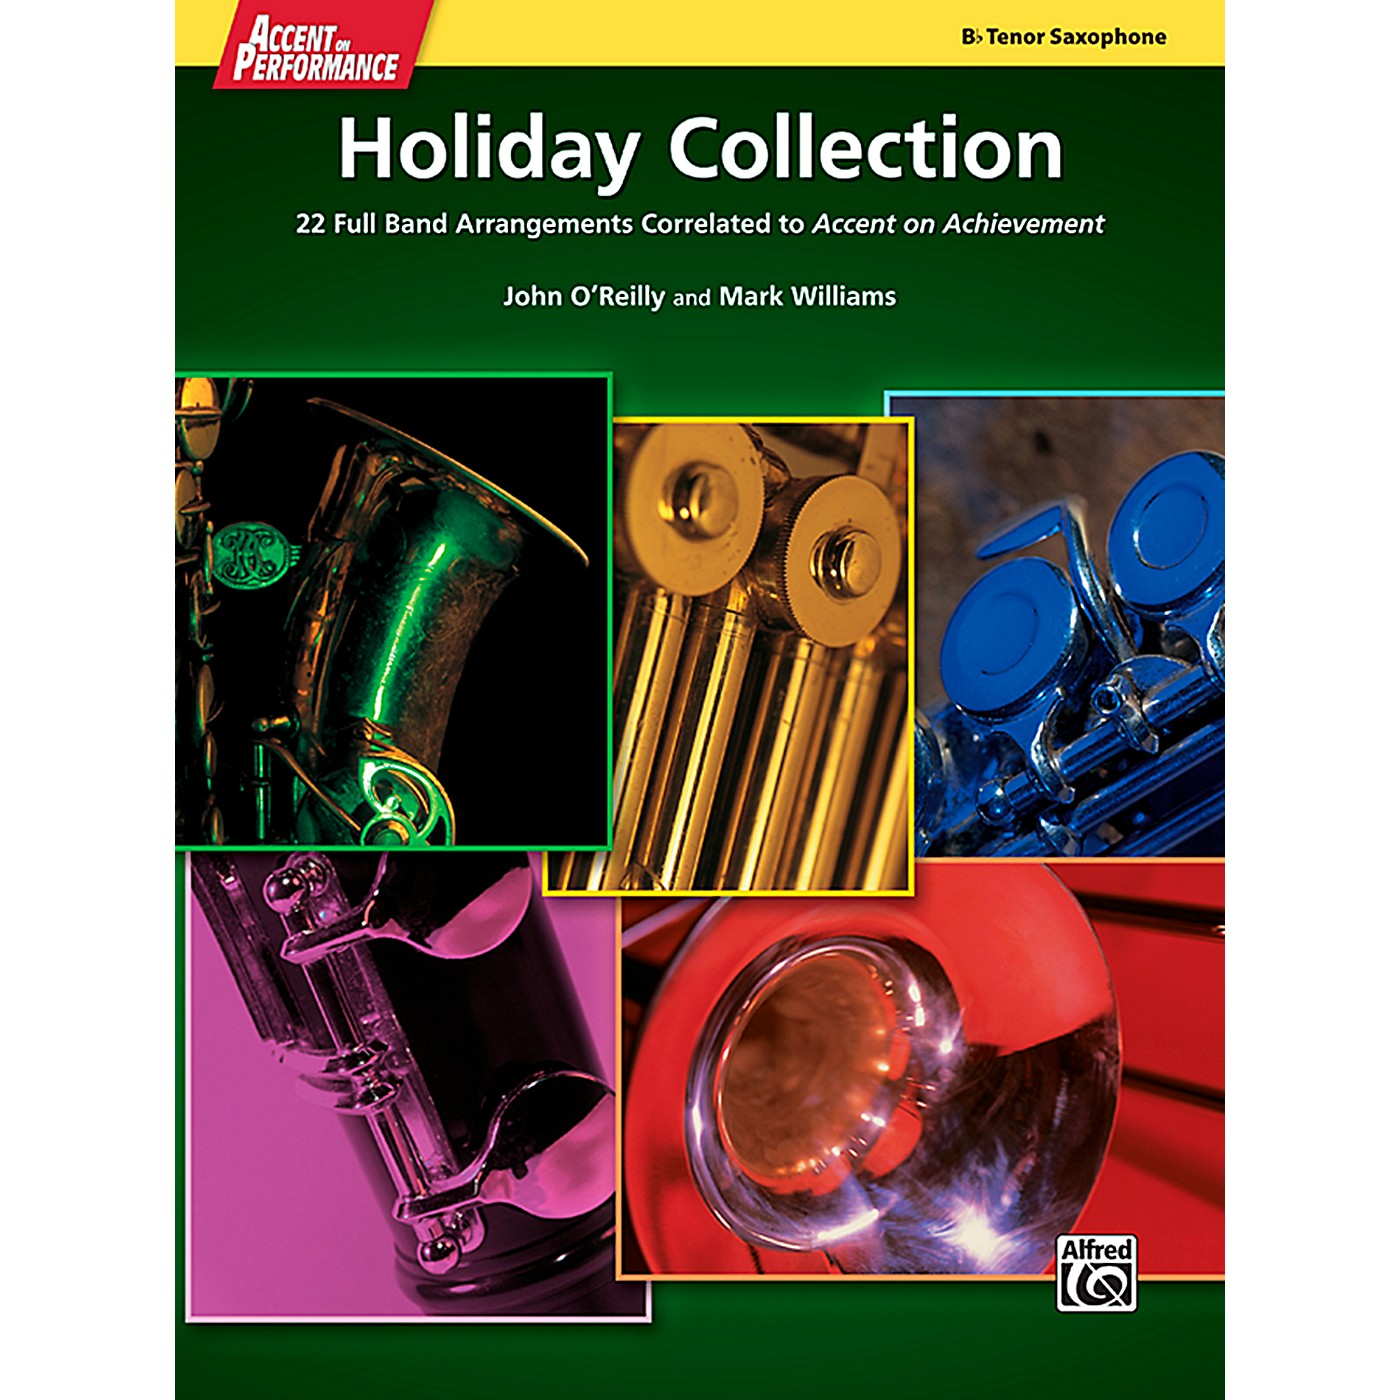 Alfred Accent on Performance Holiday Collection Tenor Saxophone Book thumbnail